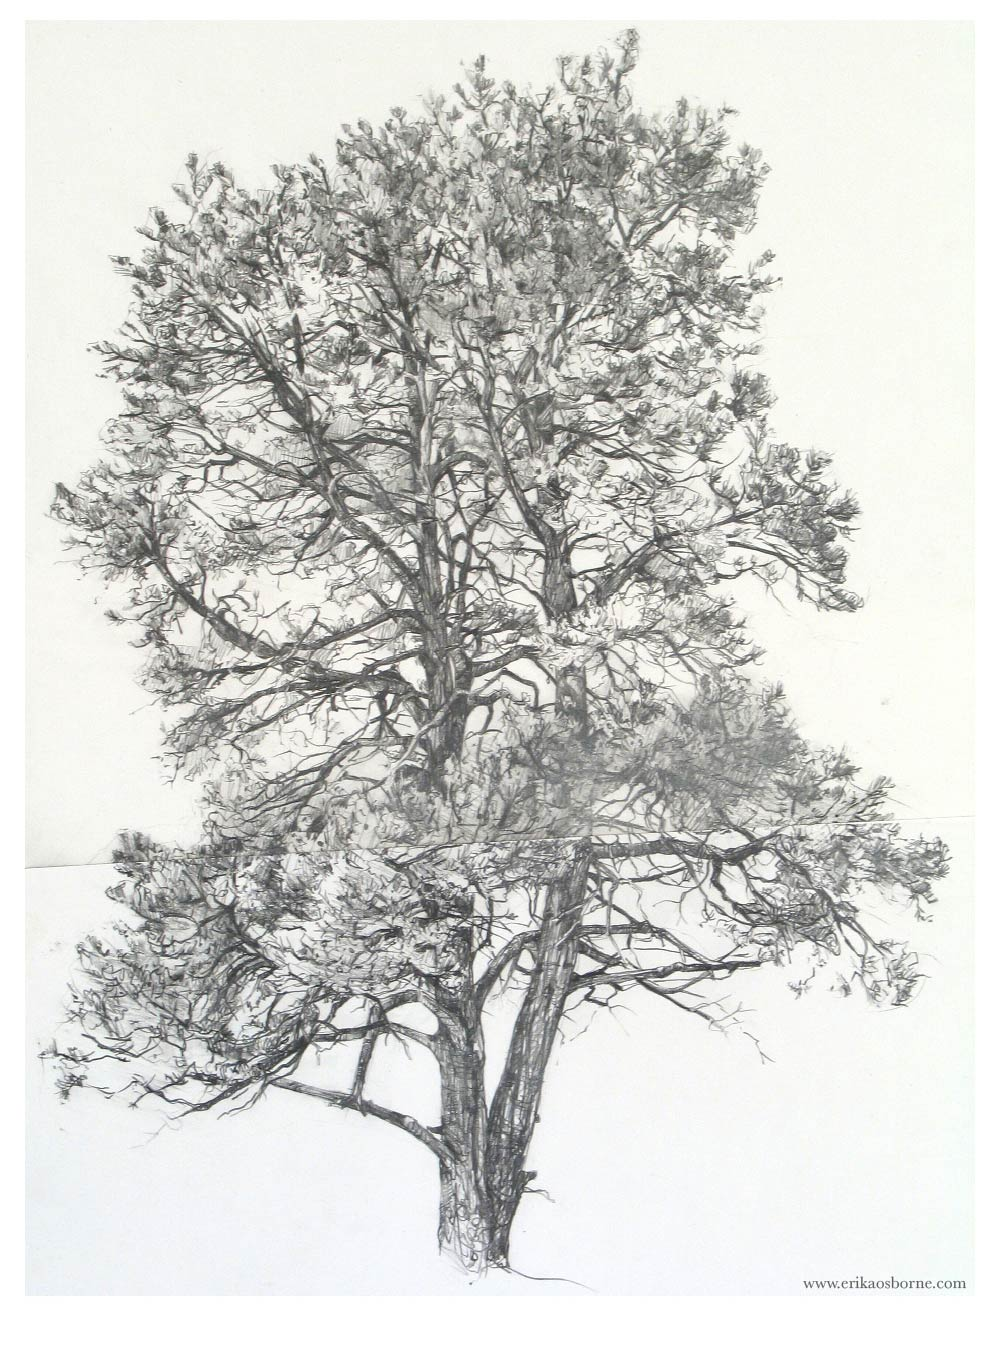 pinyon cebolla canyon nm2005 graphite on paper 17 x 23 10 hours drawing bothered by two bees and sitting on a slant tough tree to draw - Tree Drawings